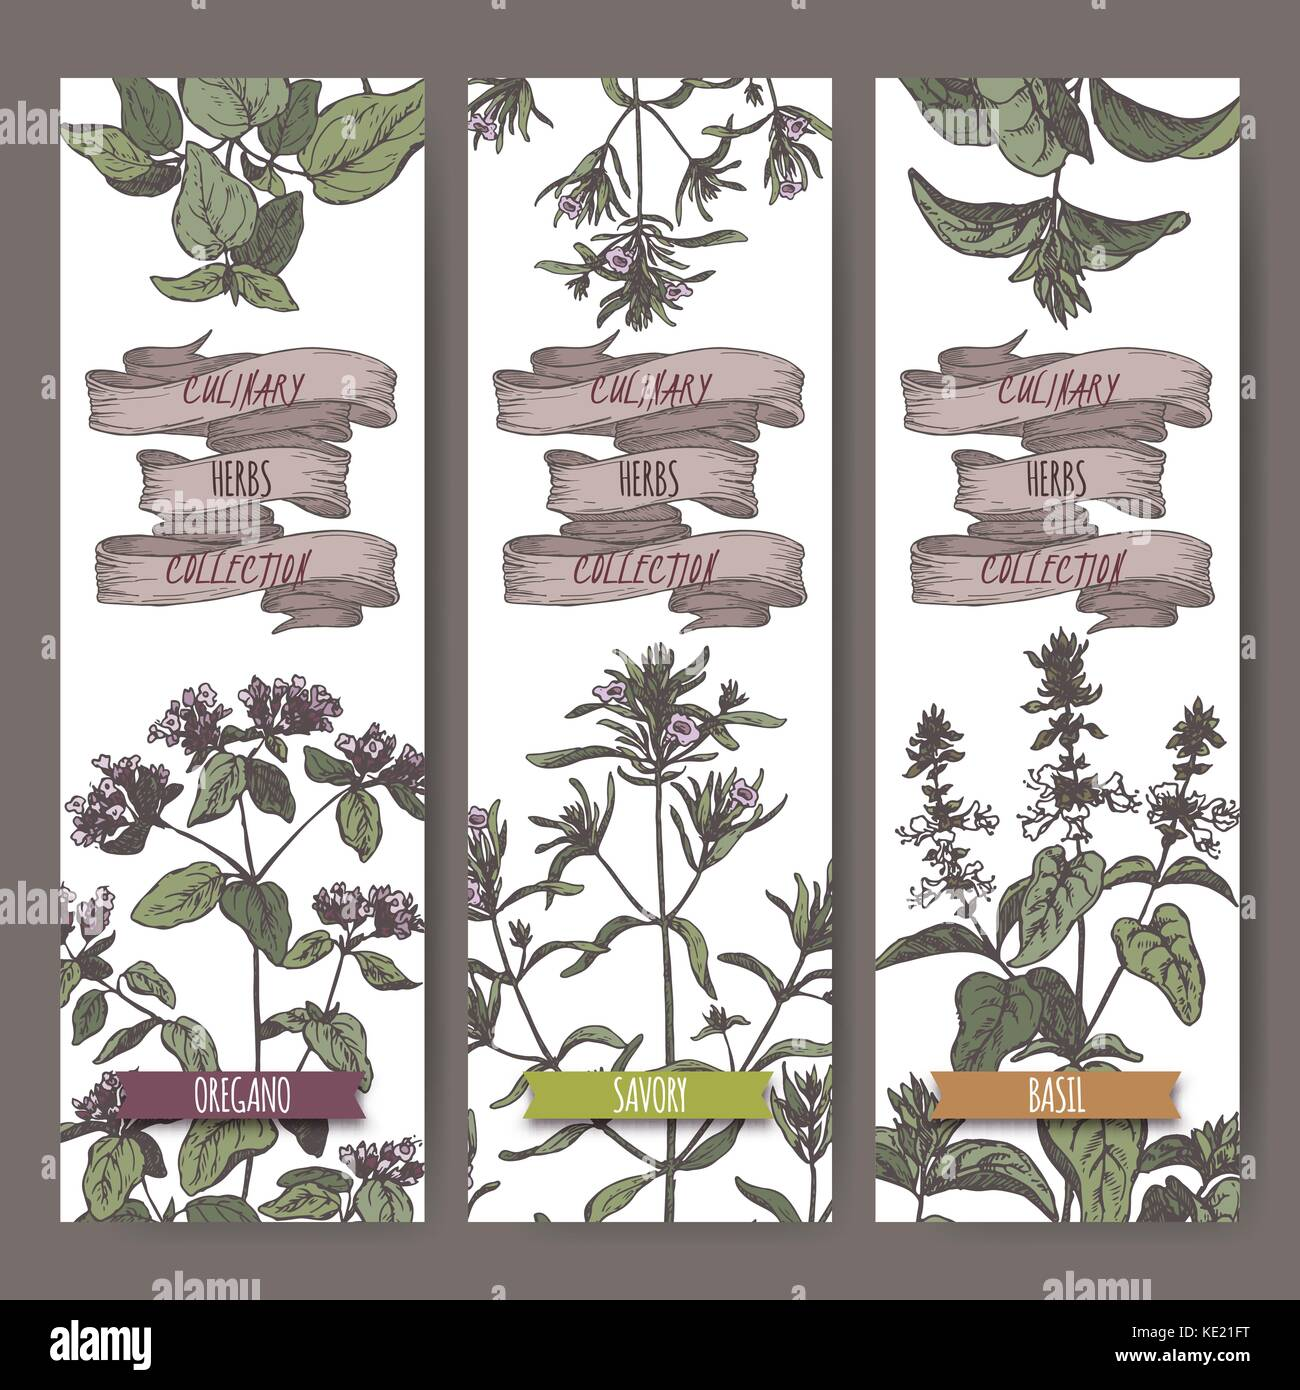 Set of three color vector banners with oregano, savory, basil sketch. Stock Vector